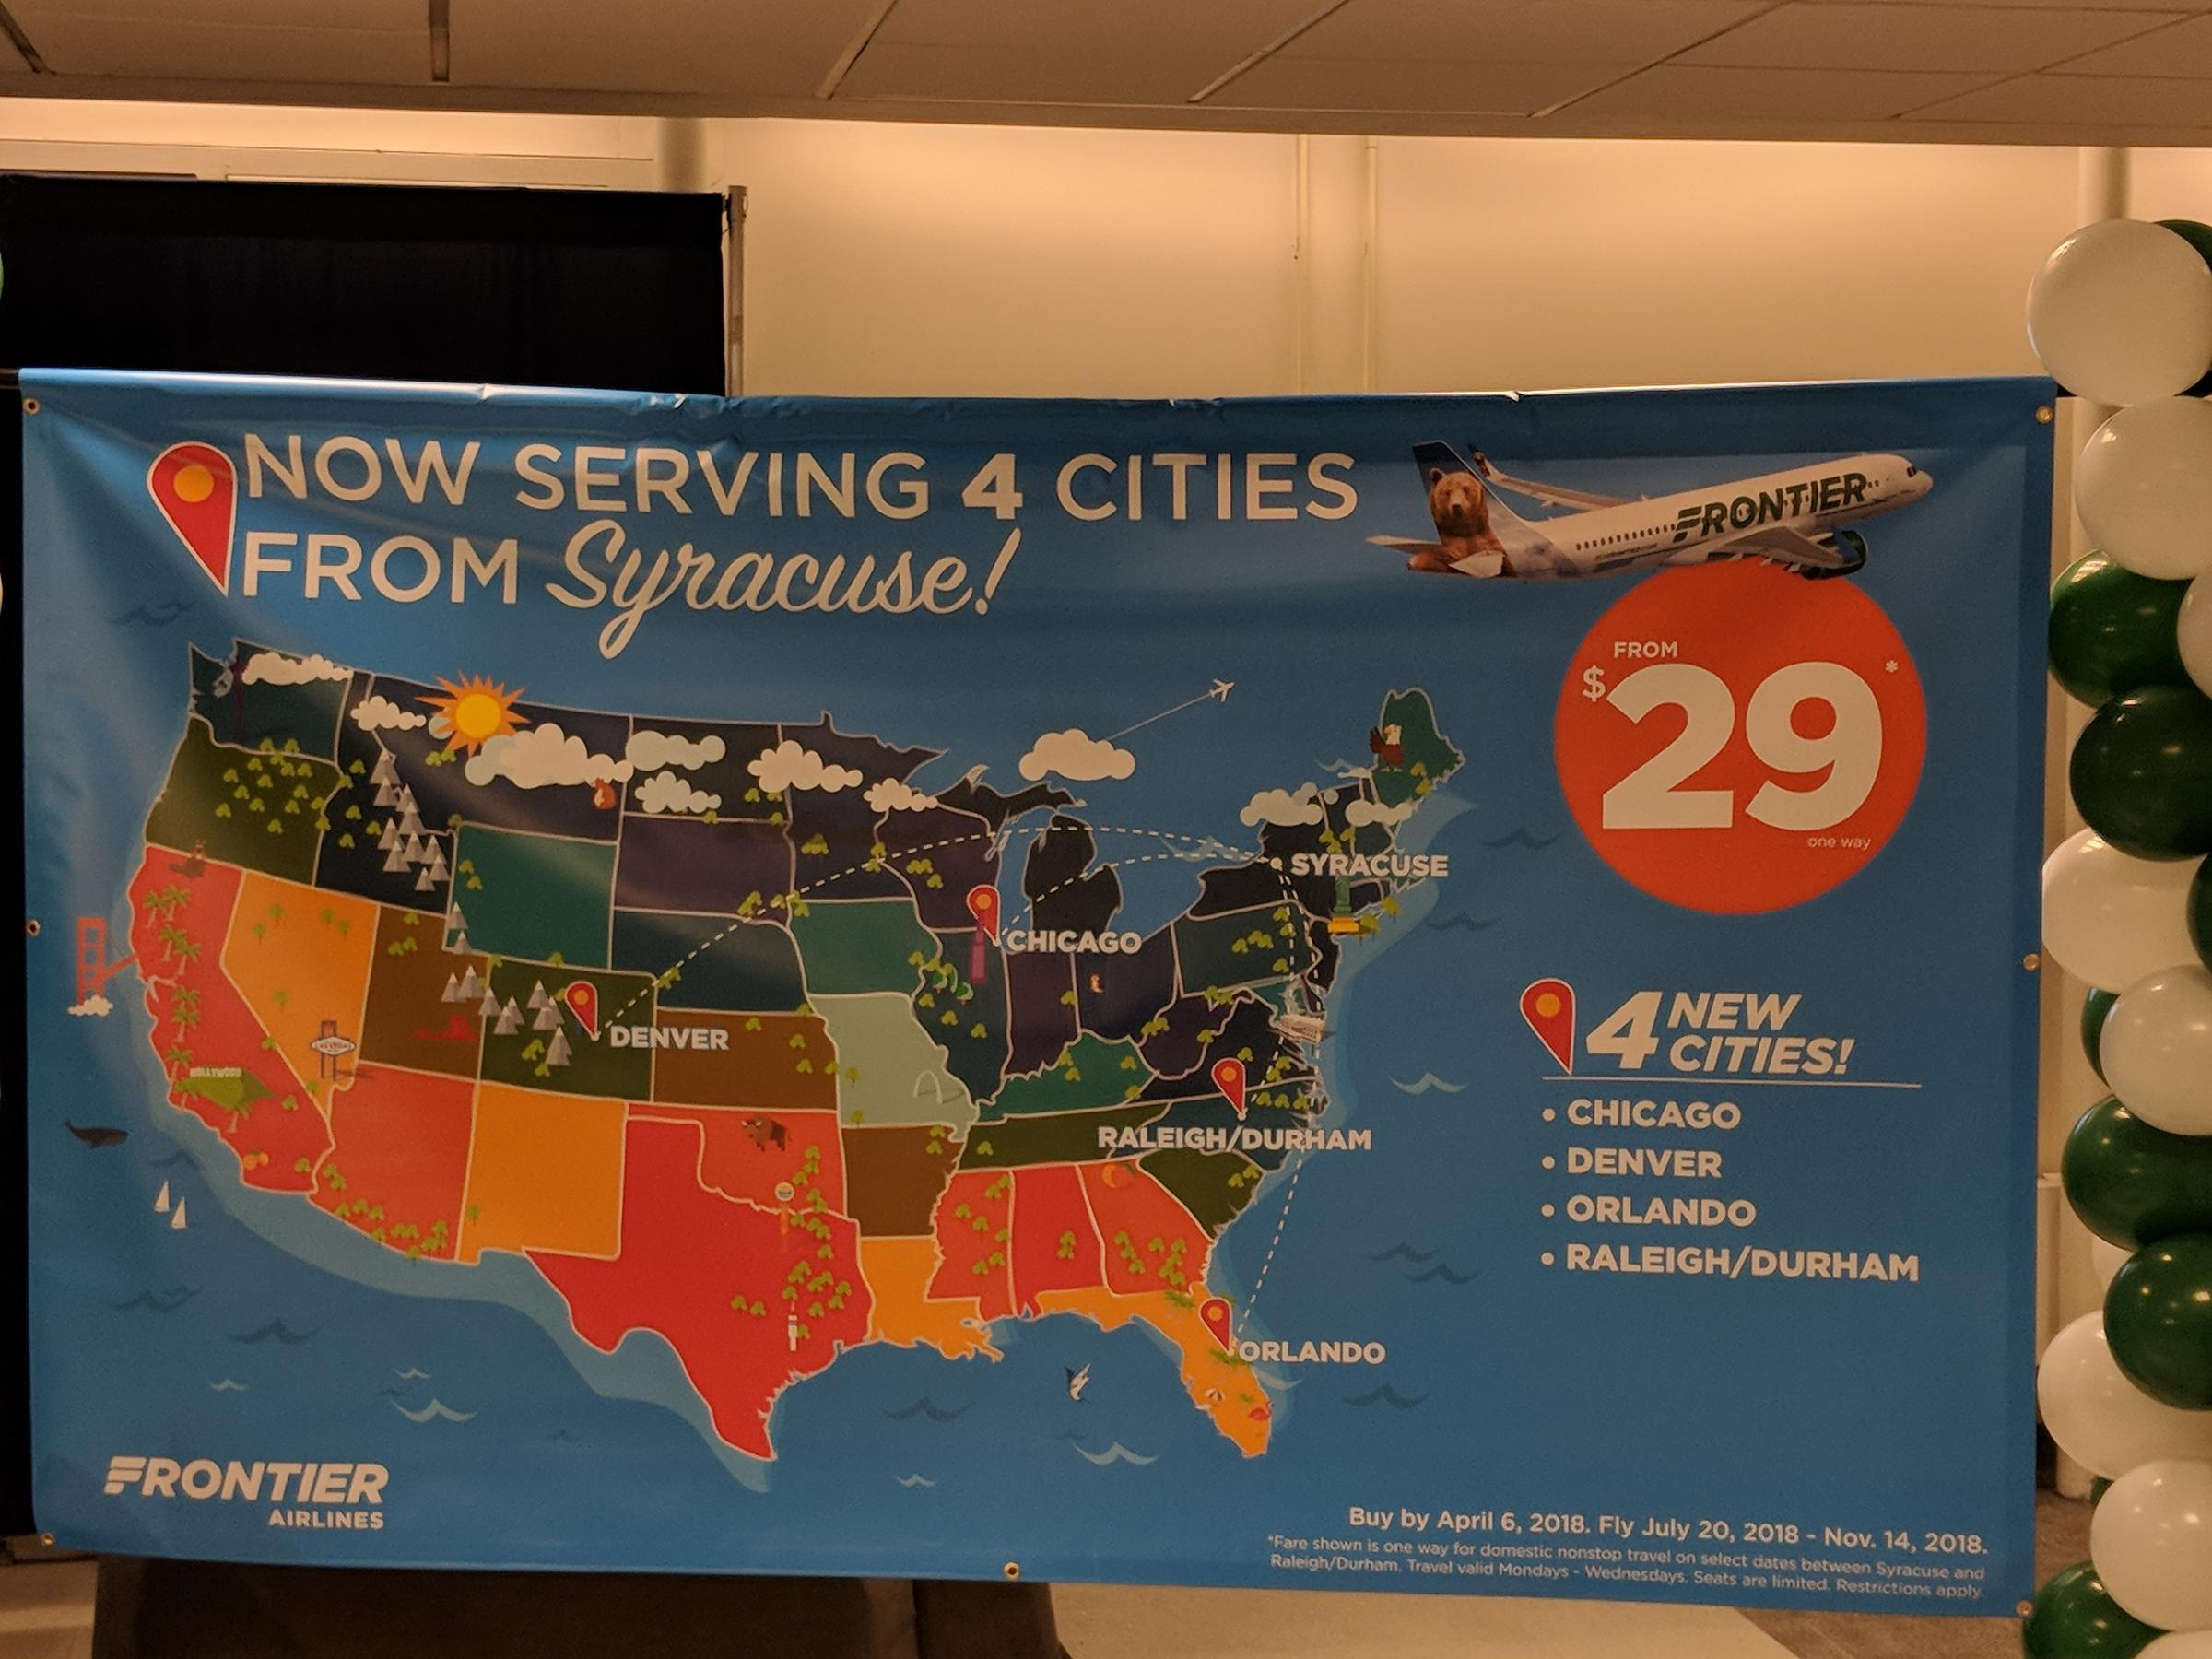 Discount Carrier Frontier Airlines Comes to Syracuse, Bringing New on